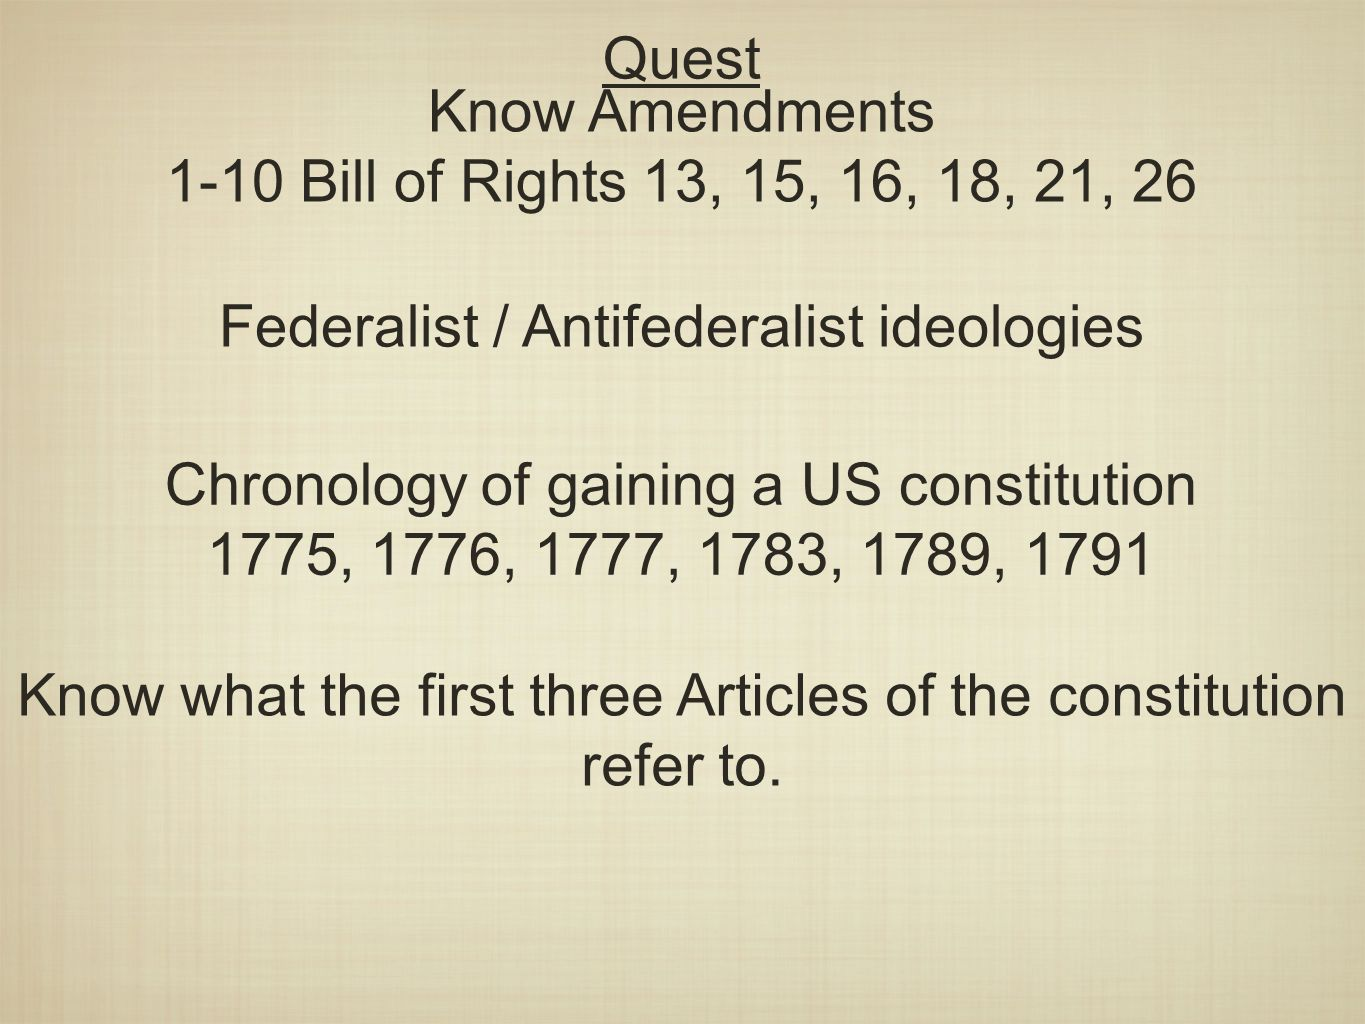 Response Question 1 22 14 Of The Rights Described In The Bill Of Rights And Further Amendments